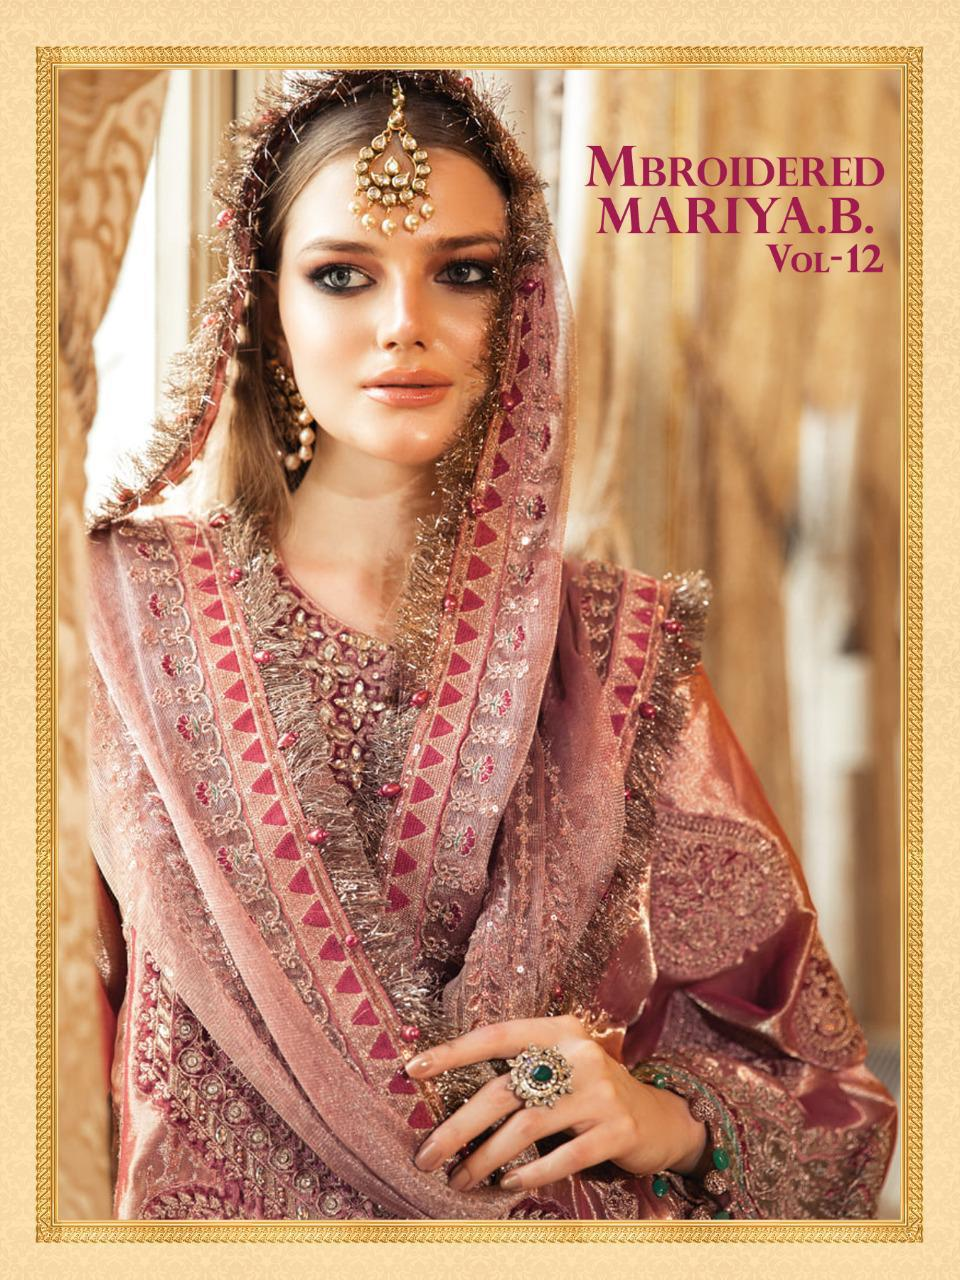 Shree Fabs Mbroidered Mariya B Vol 12 Salwar Suit Wholesale Catalog 6 Pcs 1 - Shree Fabs Mbroidered Mariya B Vol 12 Salwar Suit Wholesale Catalog 6 Pcs